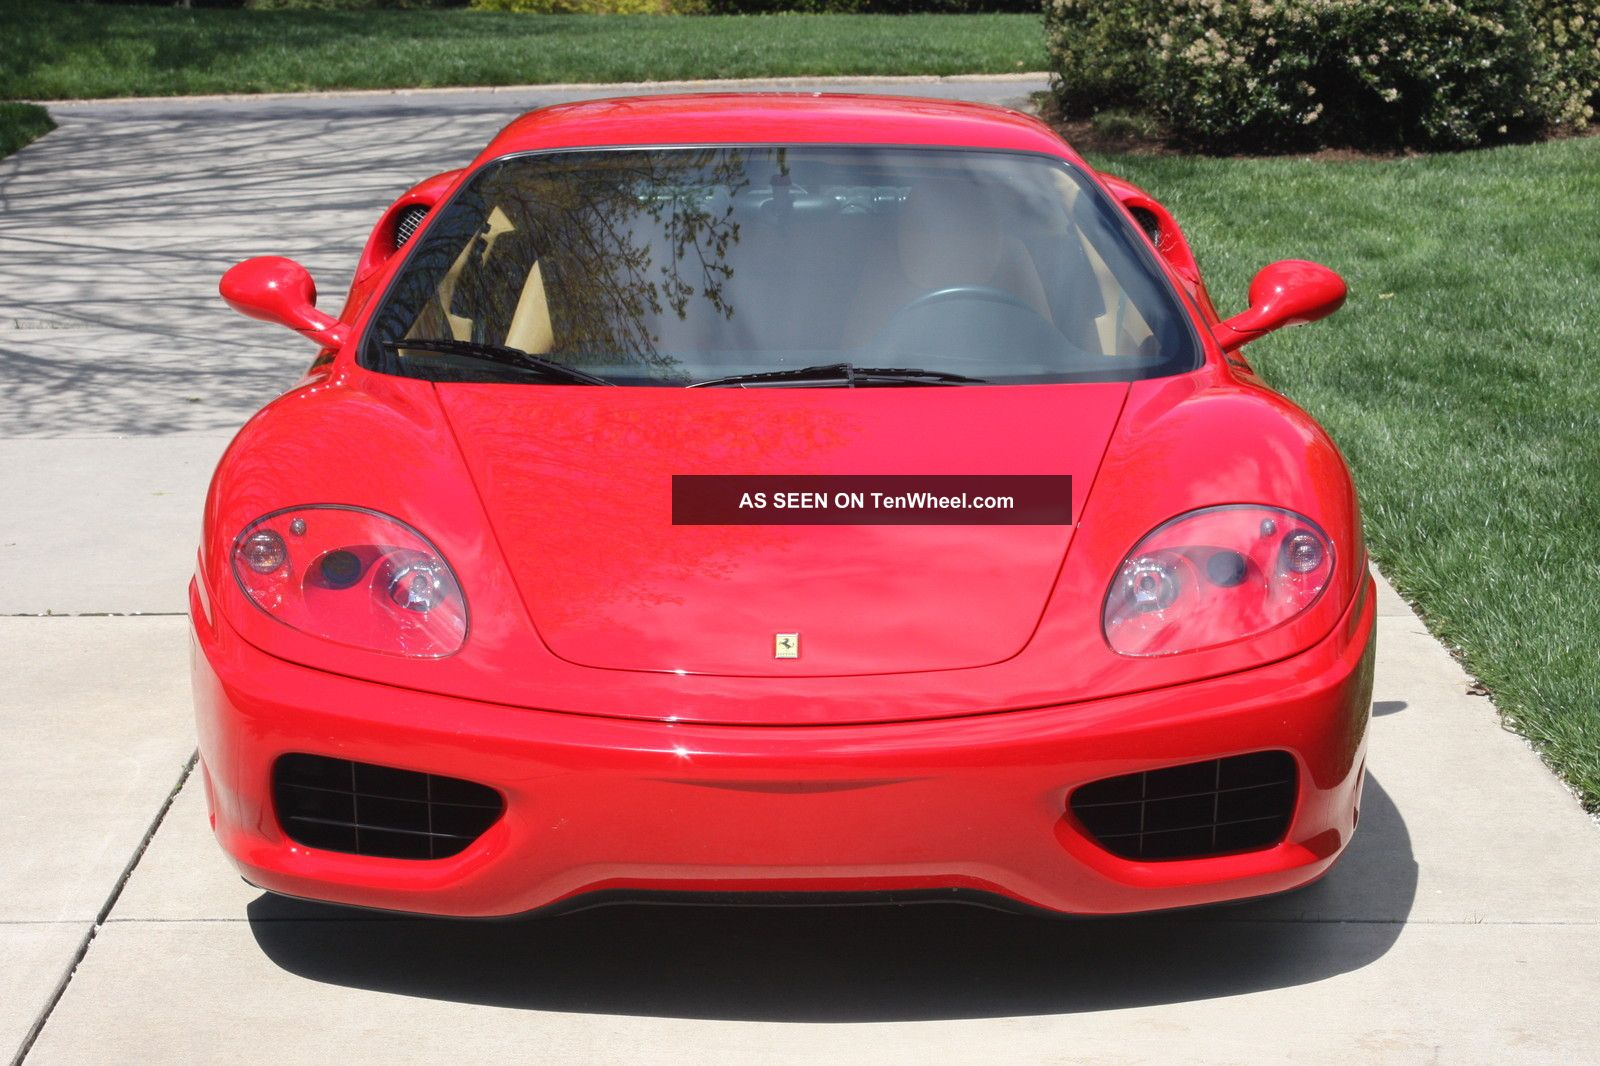 2001 Modena,  Red / Tan,  F1 Auto / Paddles,  Challenge Grill,  Red Calipers,  Shields 360 photo